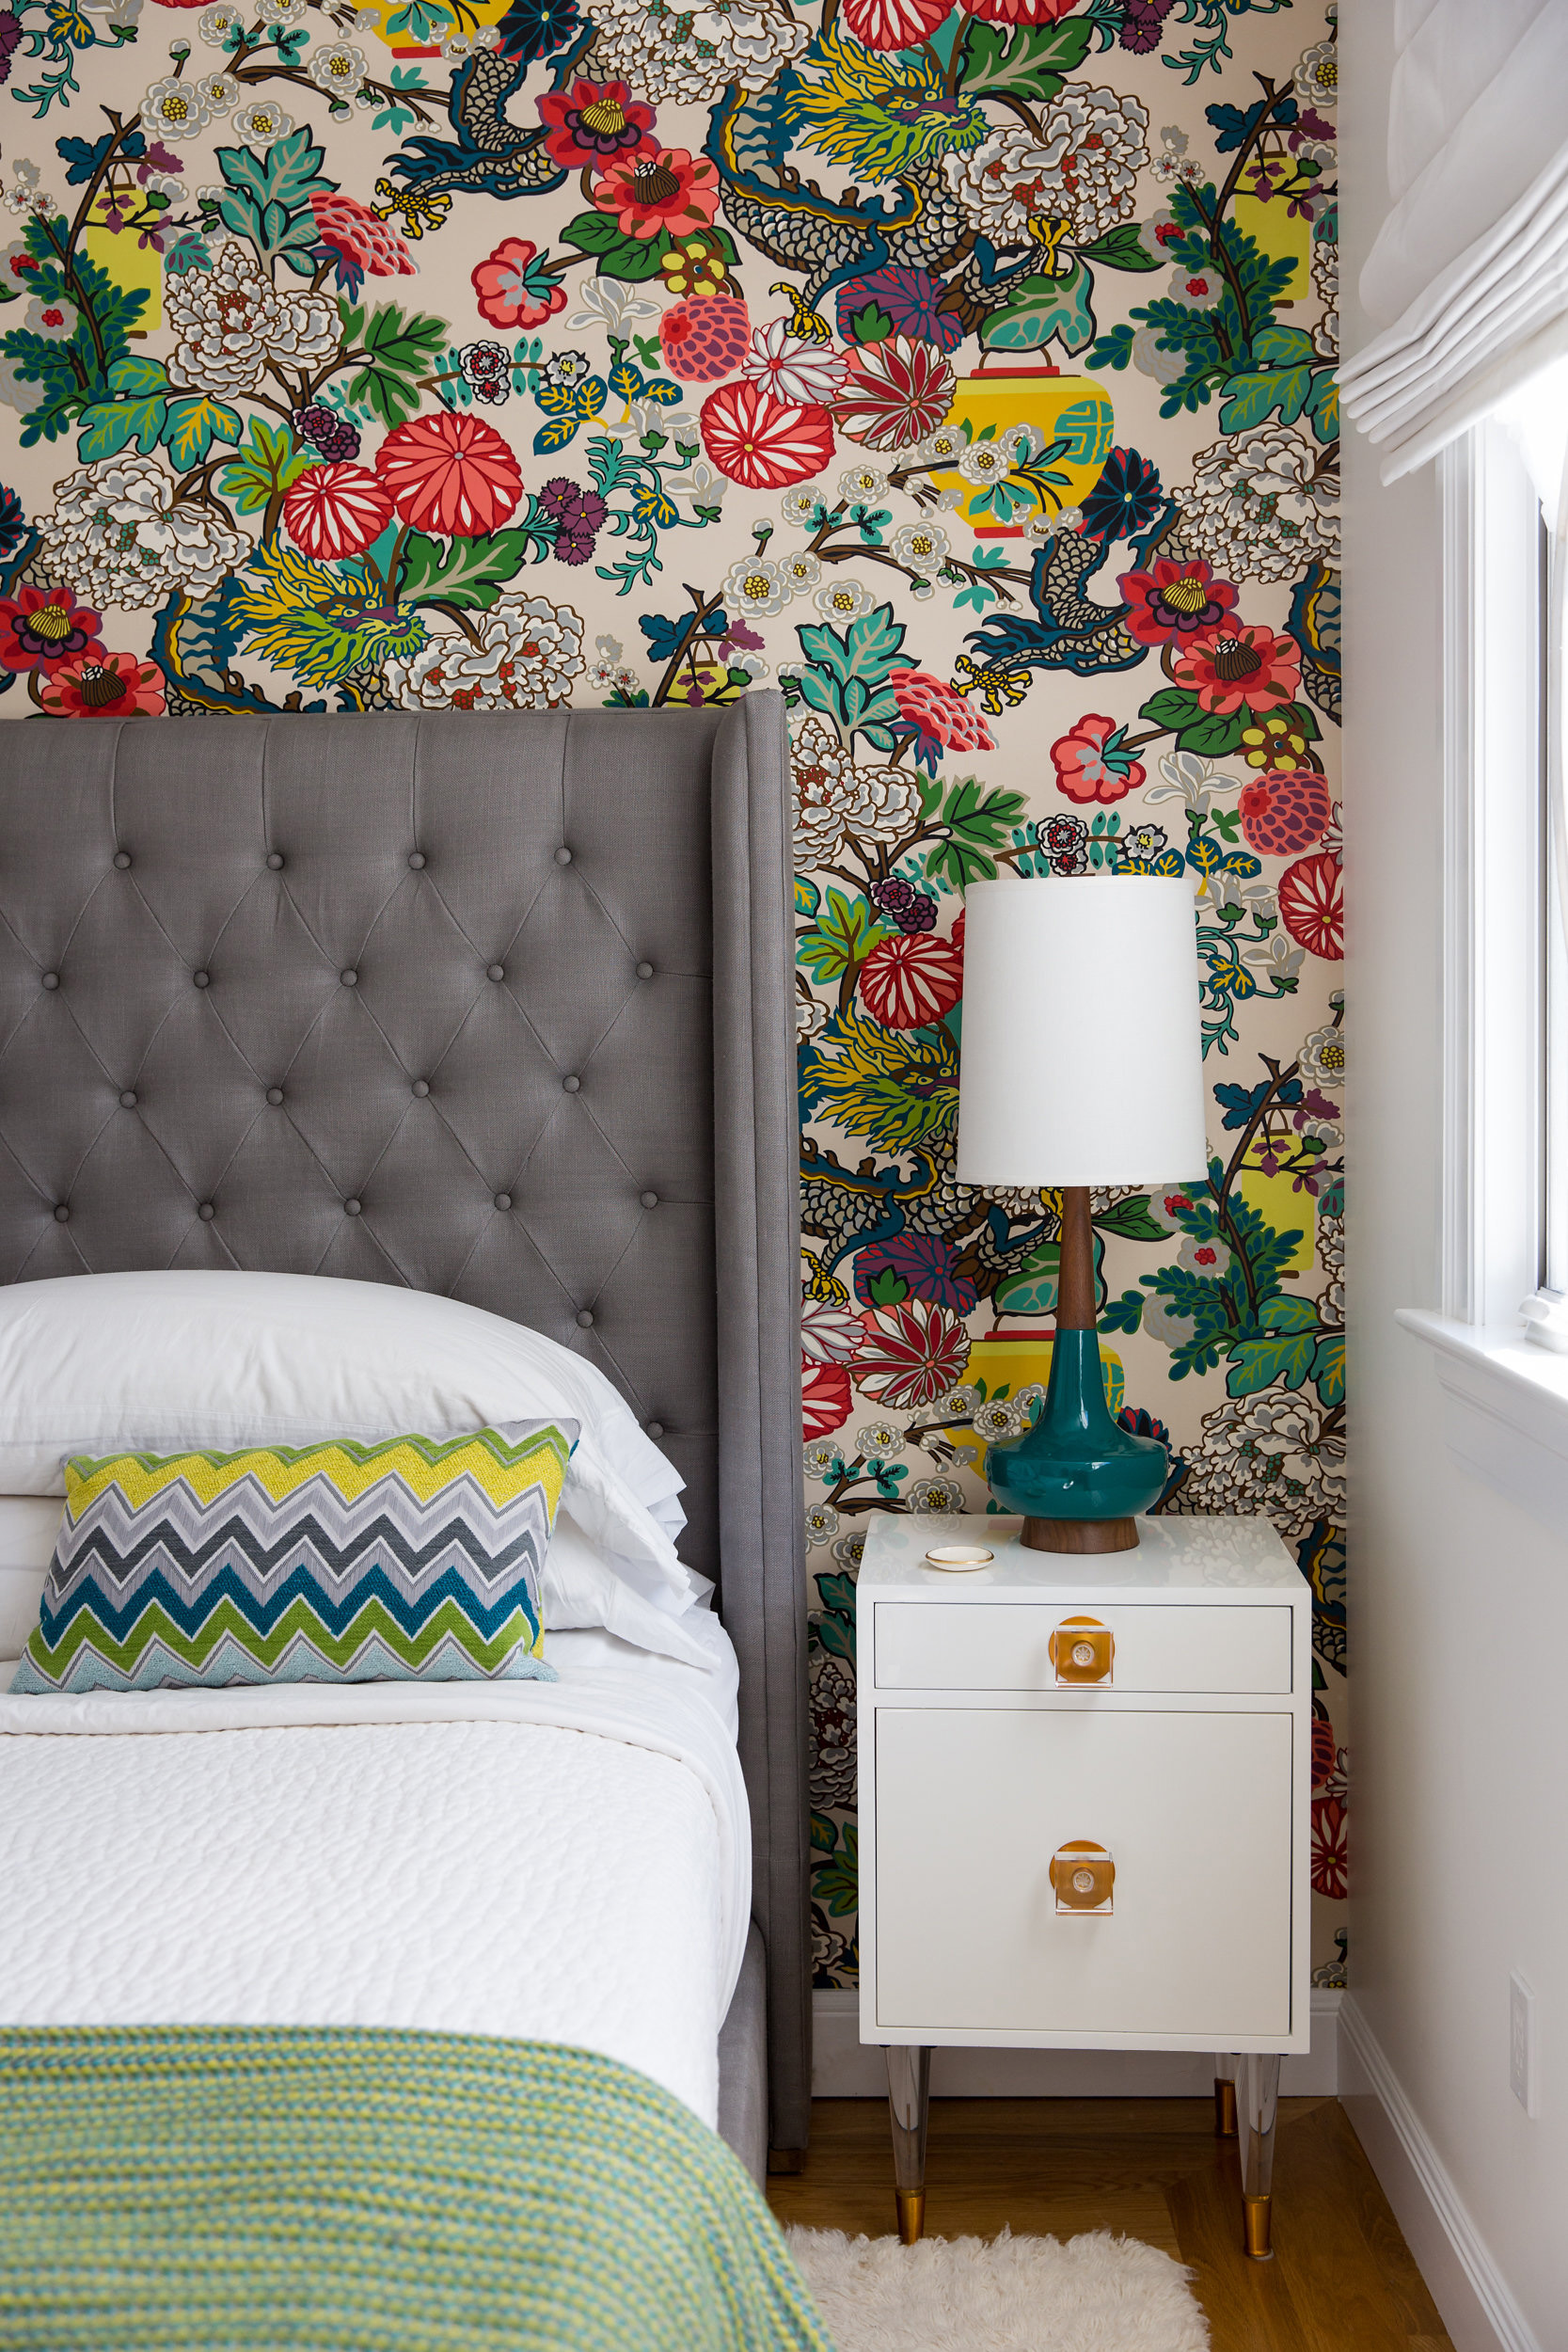 chiang mai dragon wallpaper bedroom headboard wall vibrant teal mid century lamp, white lacquer nightstand, schumacher